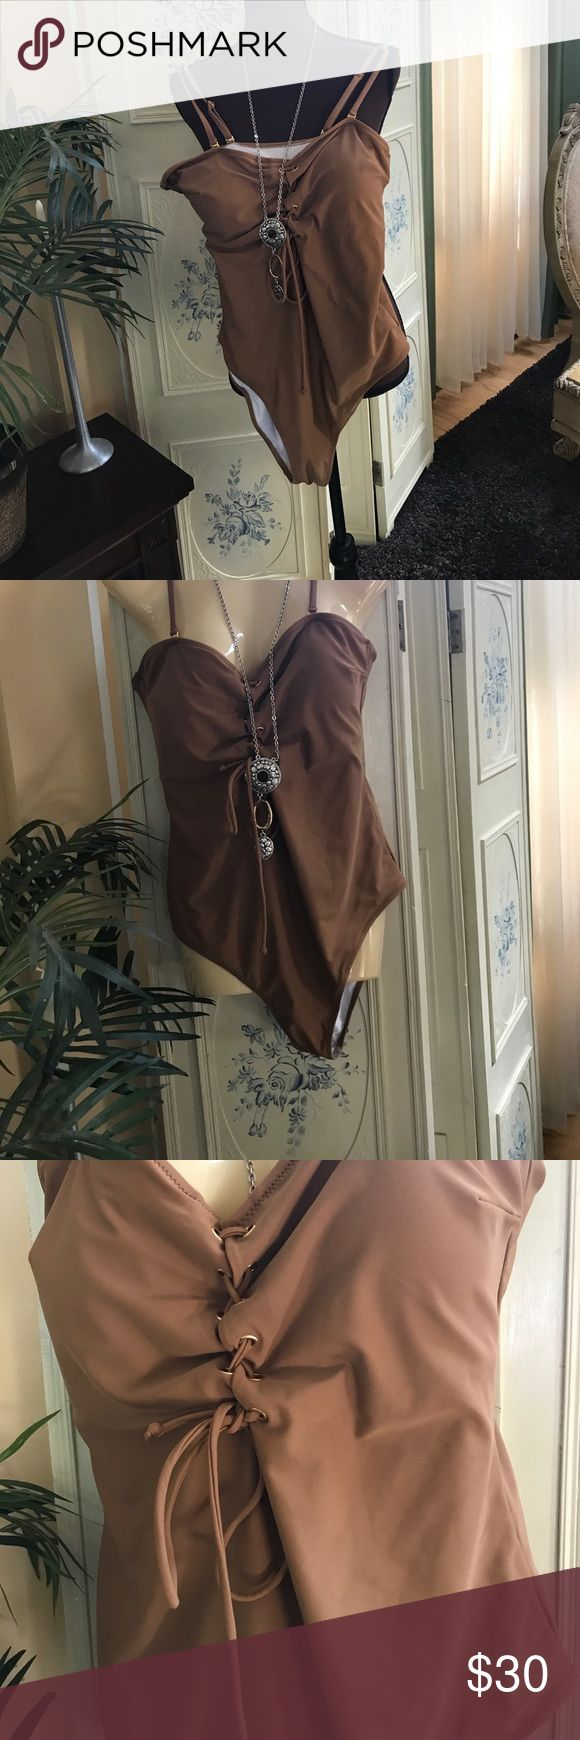 Brown one piece bathing suit L Brand new bathing suit brown with gold hardware. Padding in front.  Very nice color with the gold. Size large Swim One Pieces